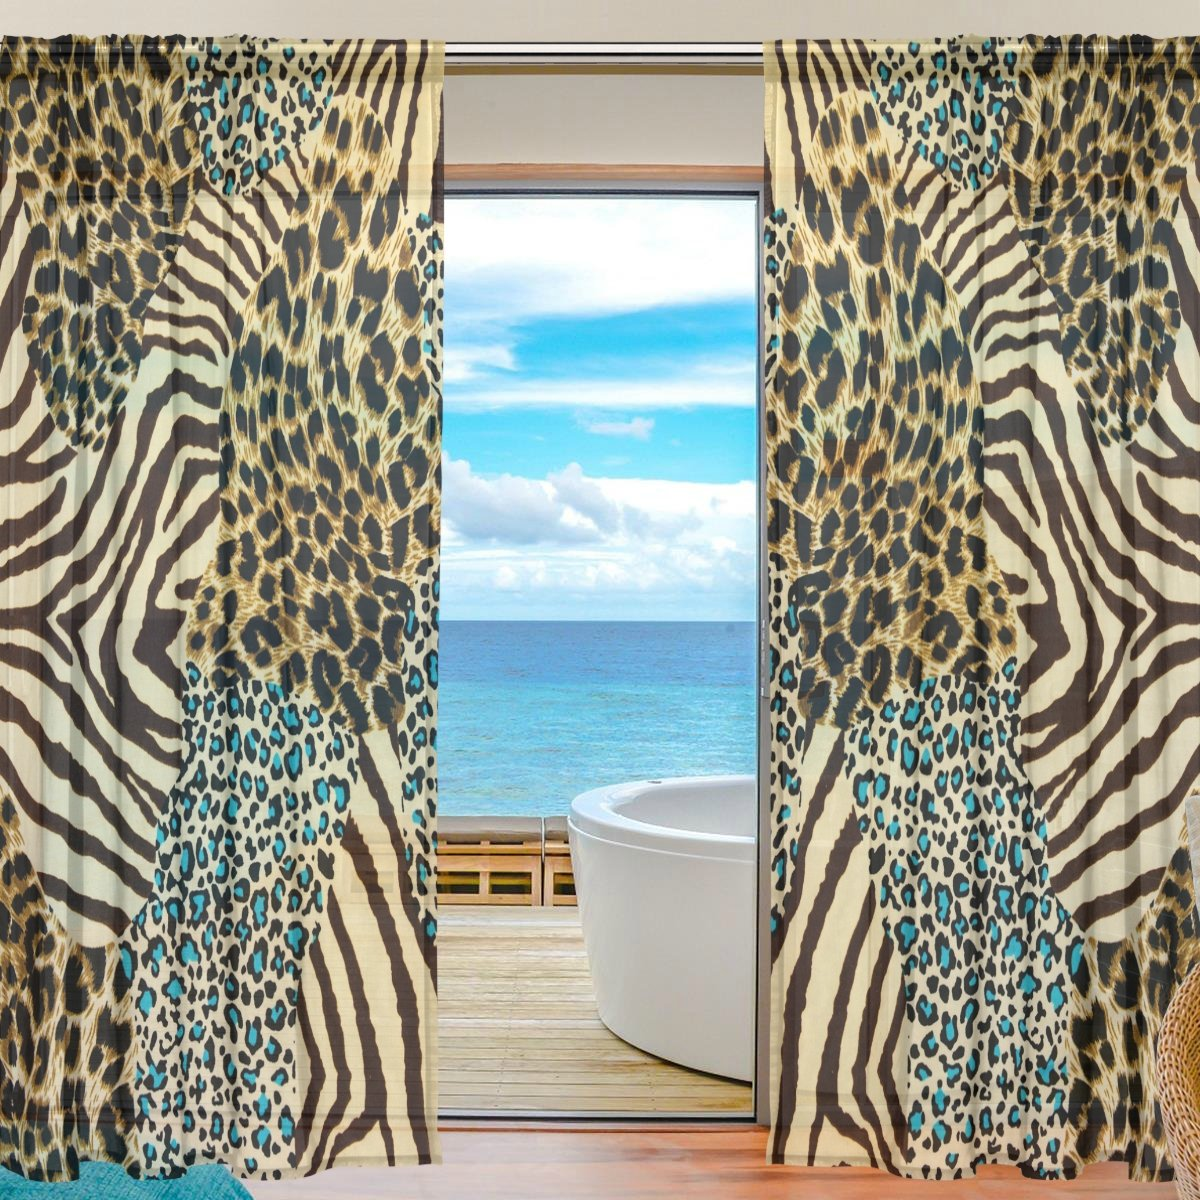 SEULIFE Window Sheer Curtain Zebra Tiger Animal Print Voile Curtain Drapes for Door Kitchen Living Room Bedroom 55x78 inches 2 Panels by SEULIFE (Image #1)